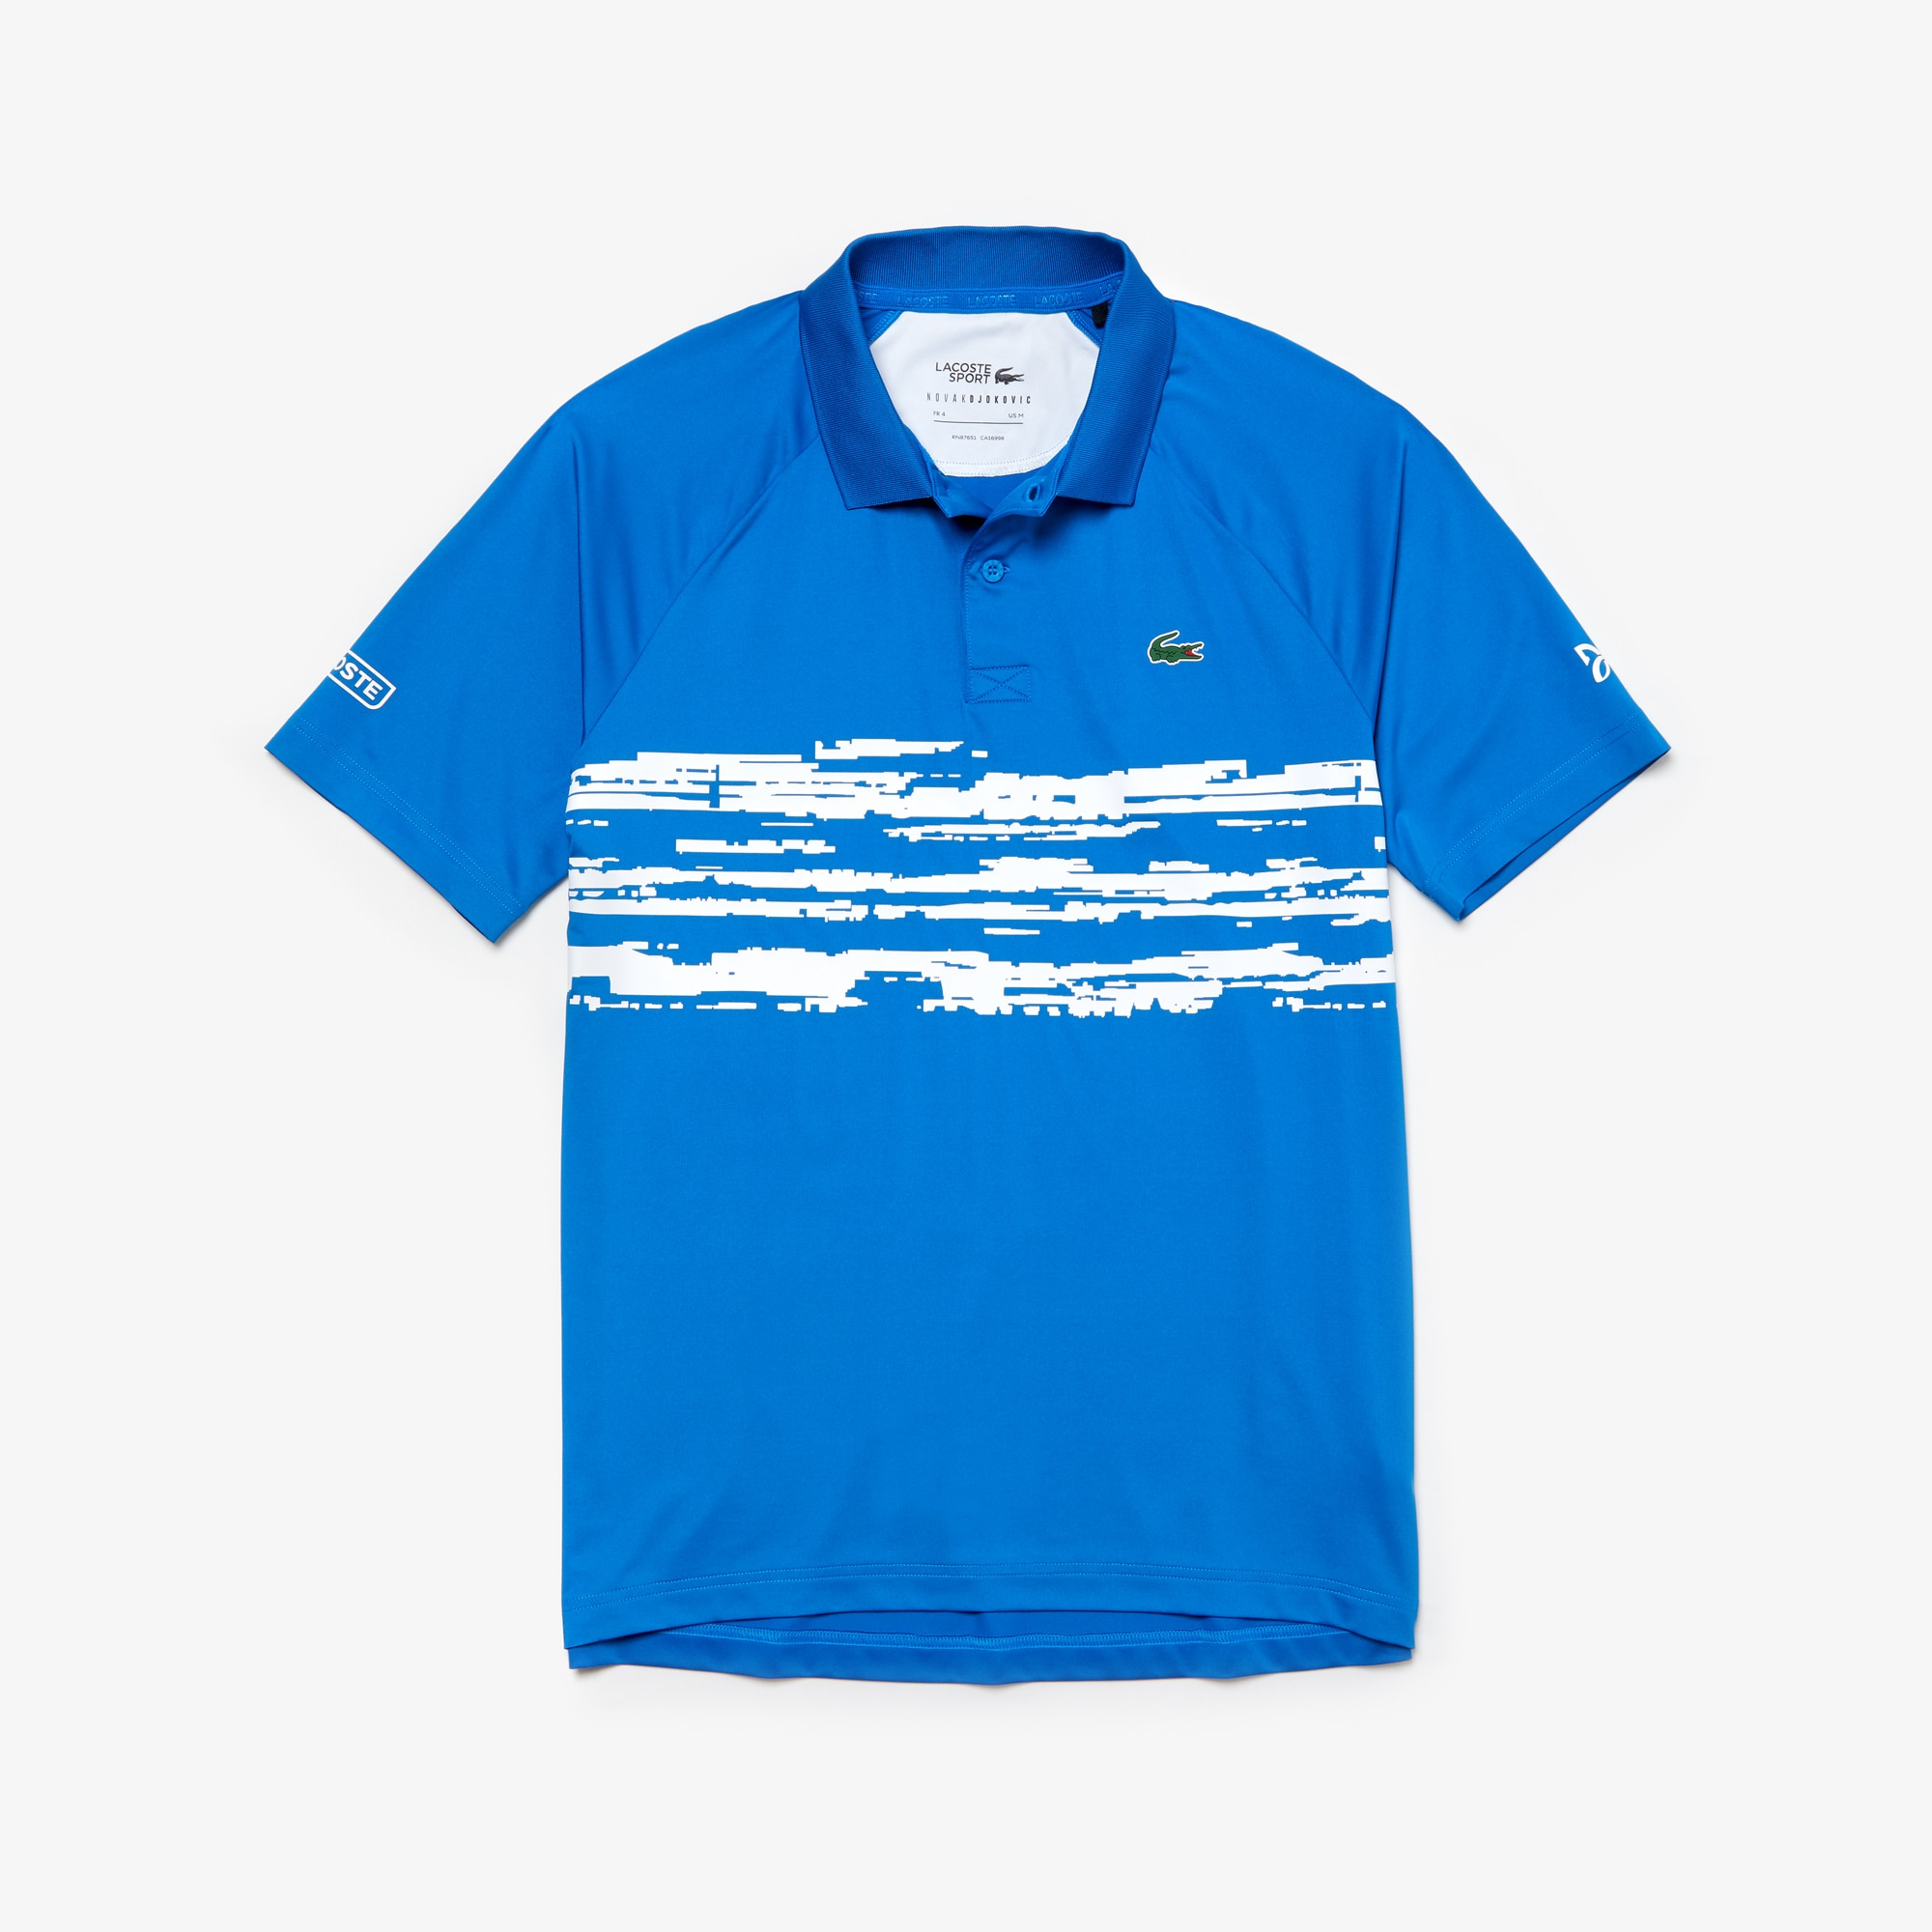 Lacoste SPORT x Novak Djokovic Collection poloshirt heren jersey met print en stretch